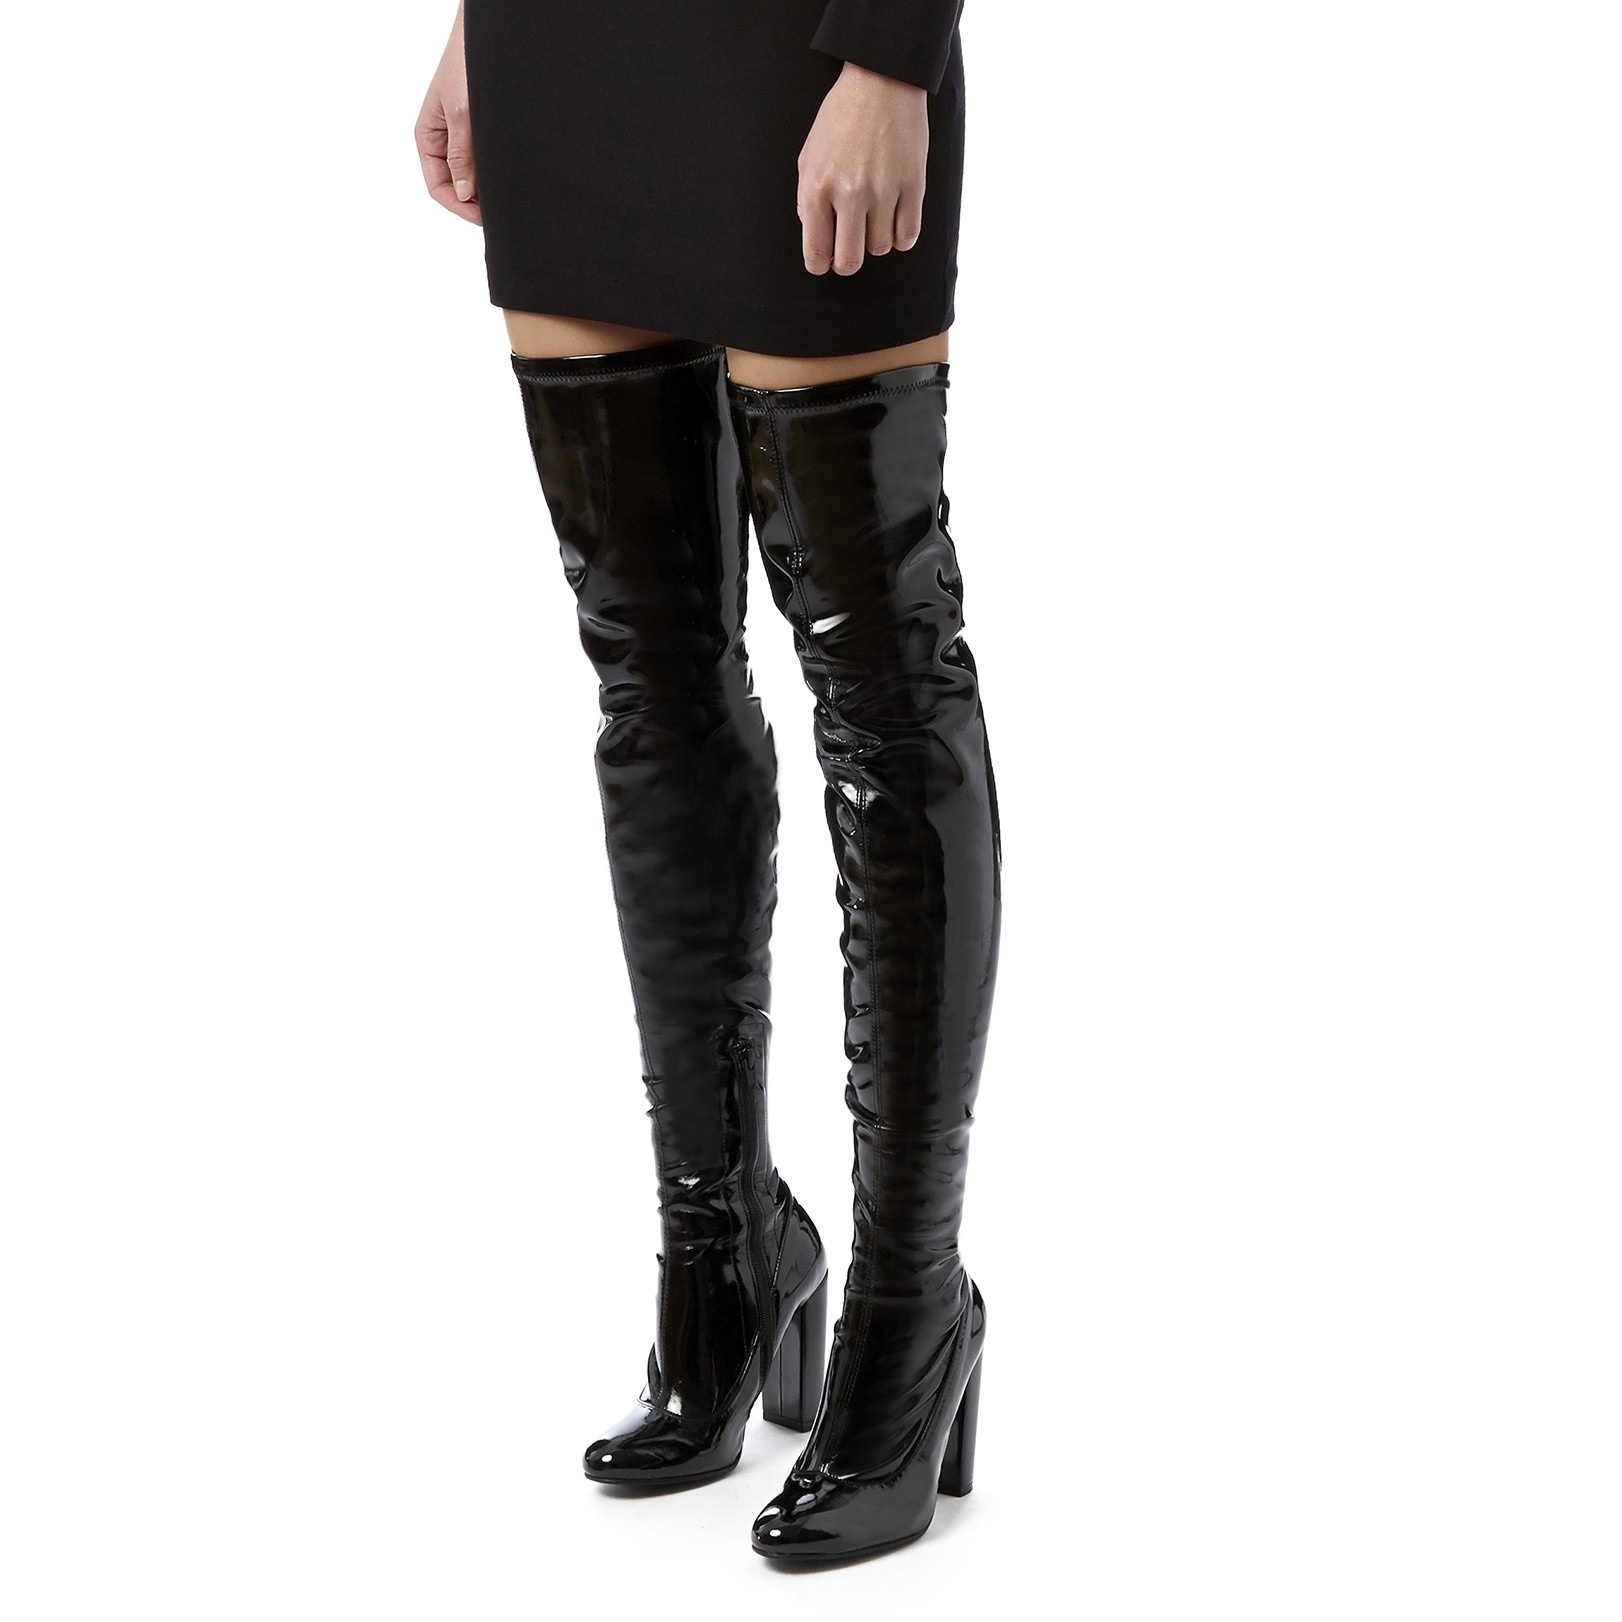 Black High Heel Over The Knee Boots by Carvela Kurt Geiger | Kurt ...